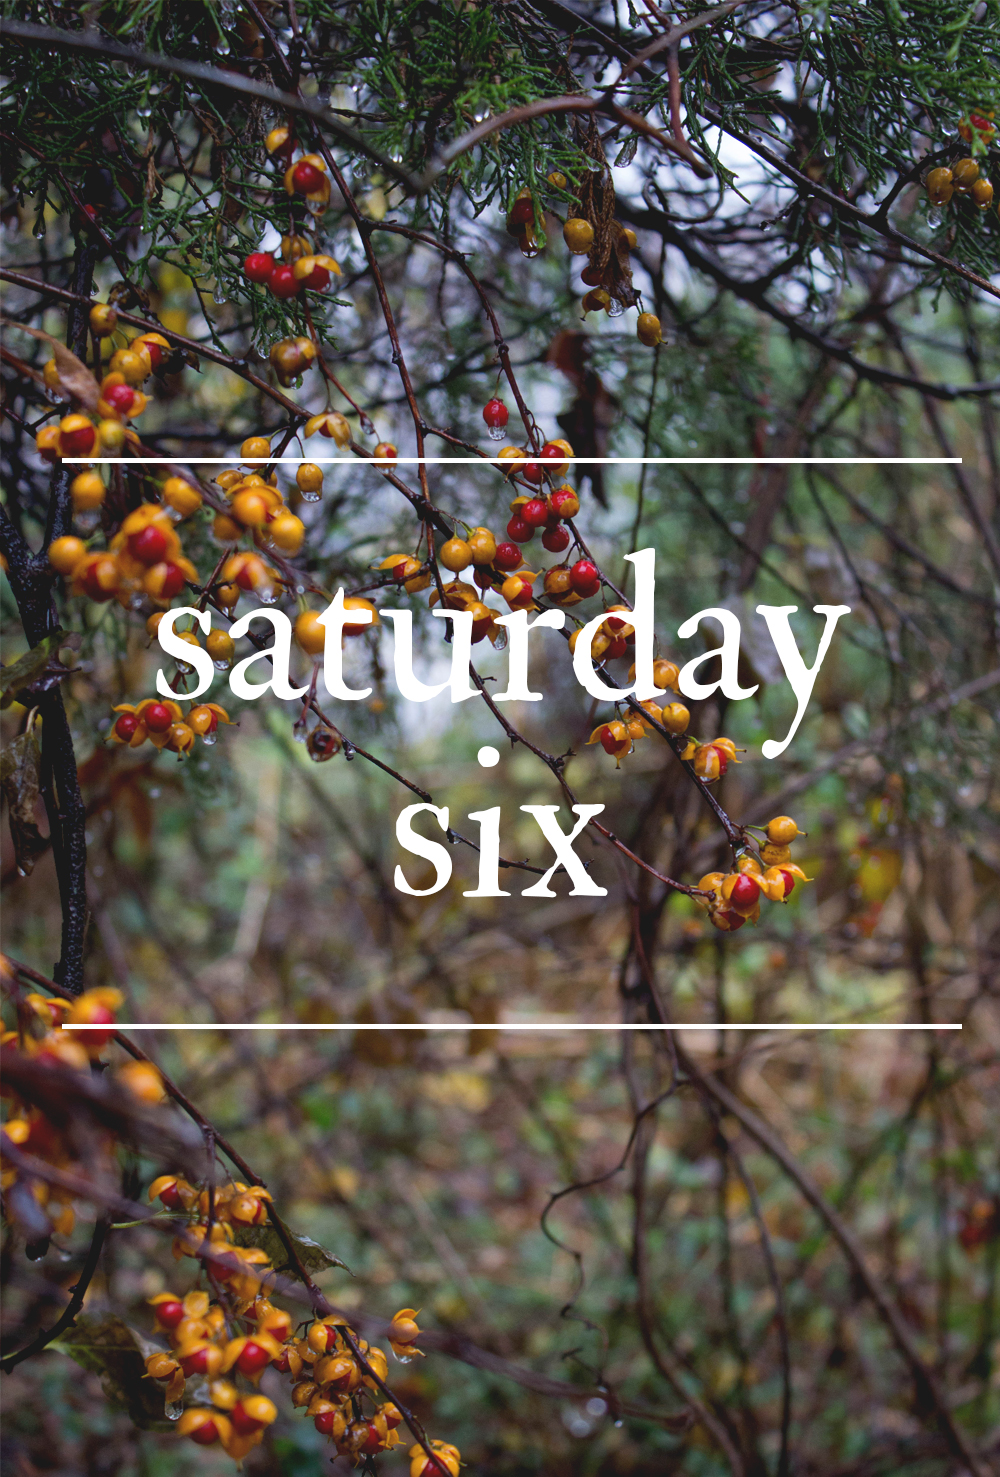 The Saturday Six | SoulBeet